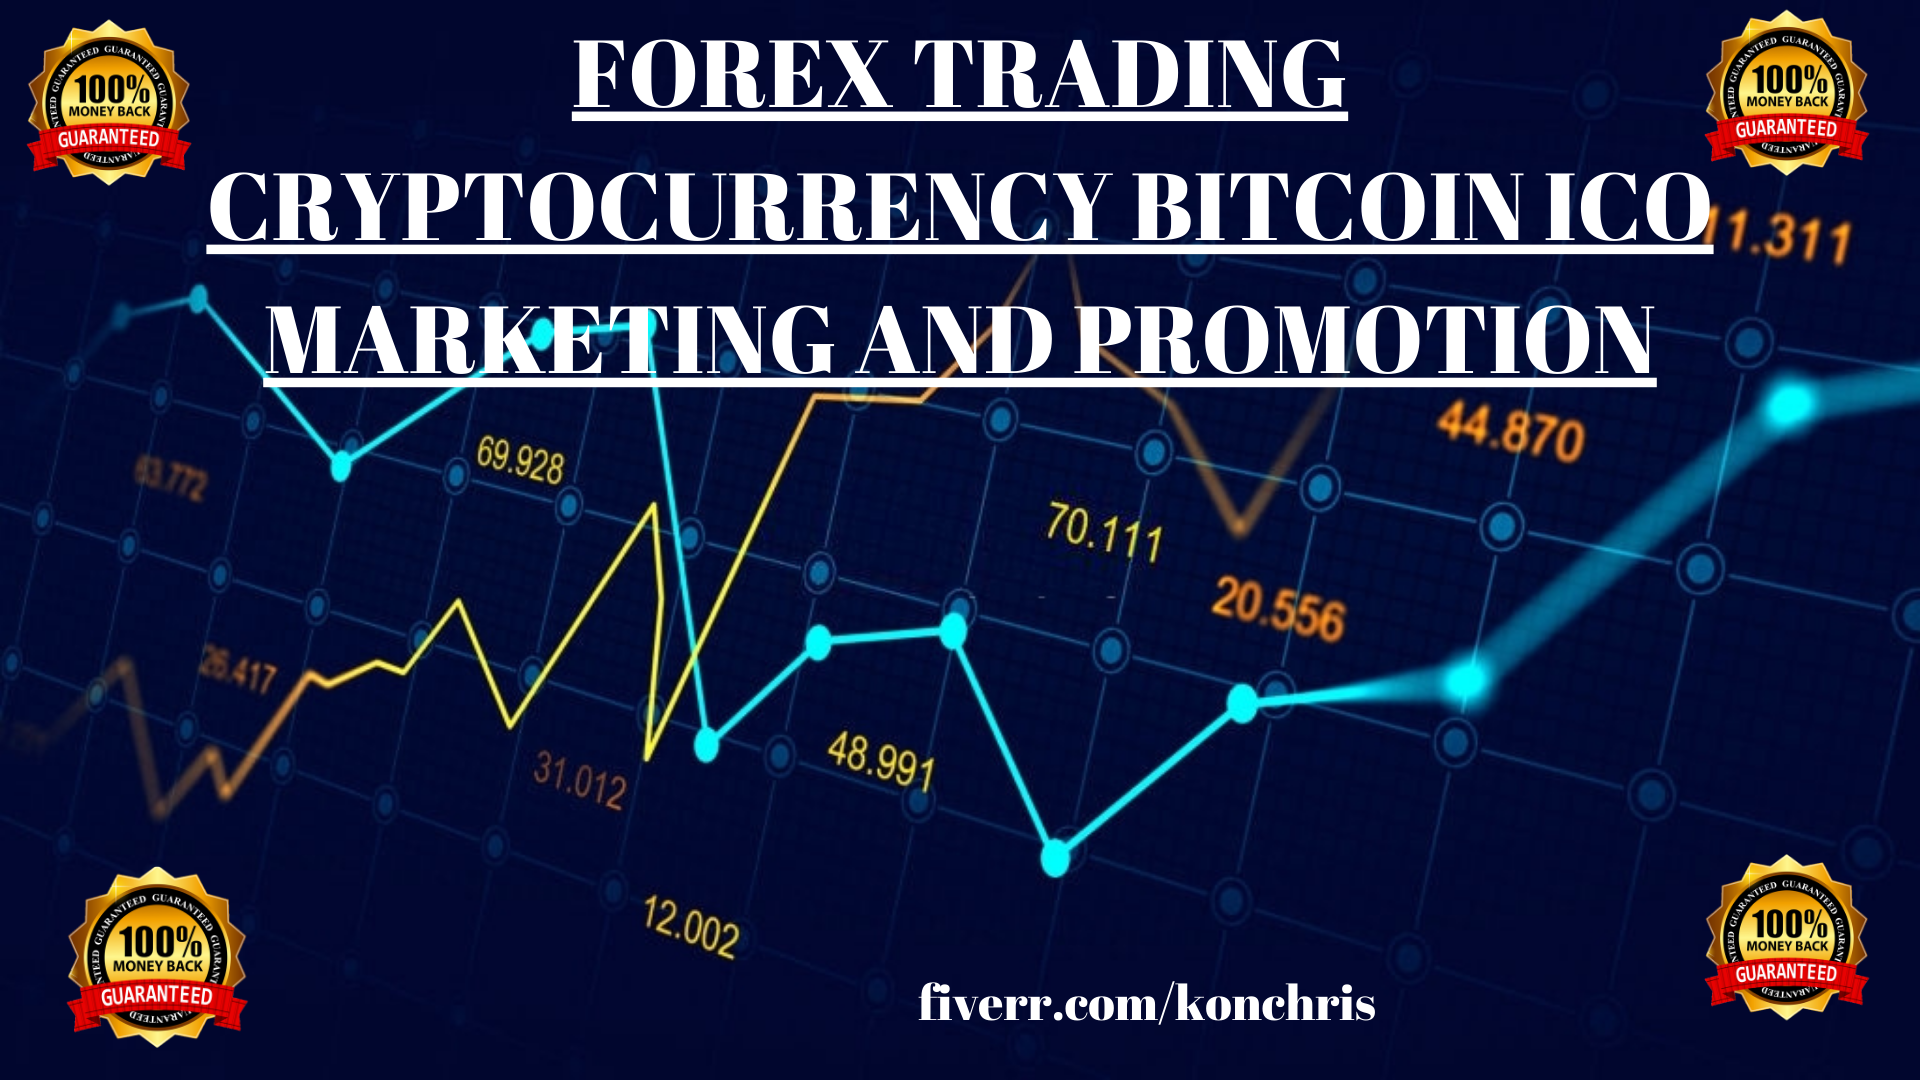 I will do forex trading blockchain cryptocurrency bitcoin promotion to get traffic, FiverrBox